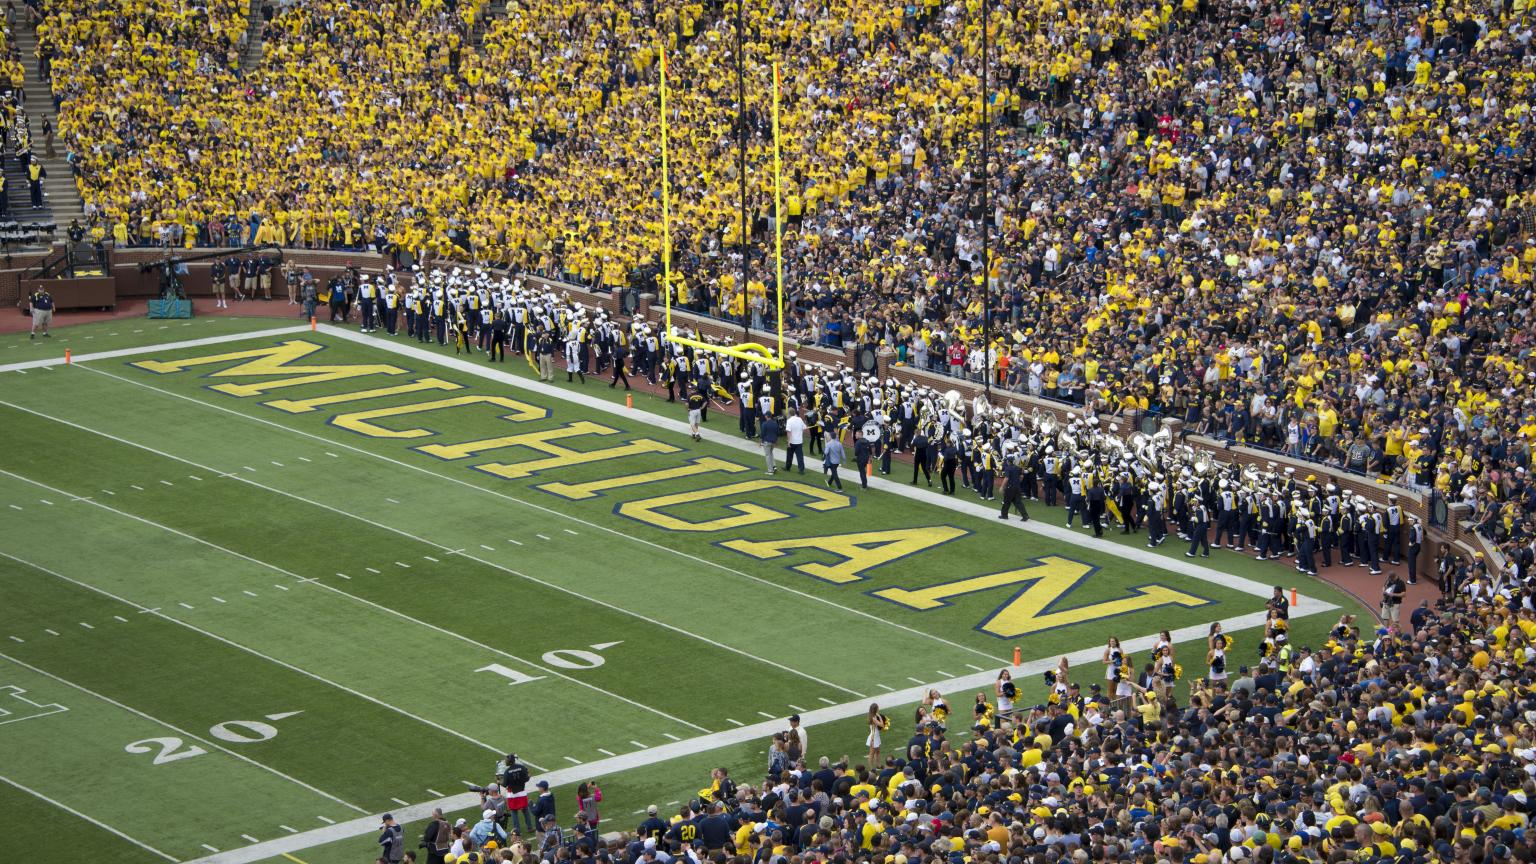 Coller Society Meeting Event at Michigan Football Game